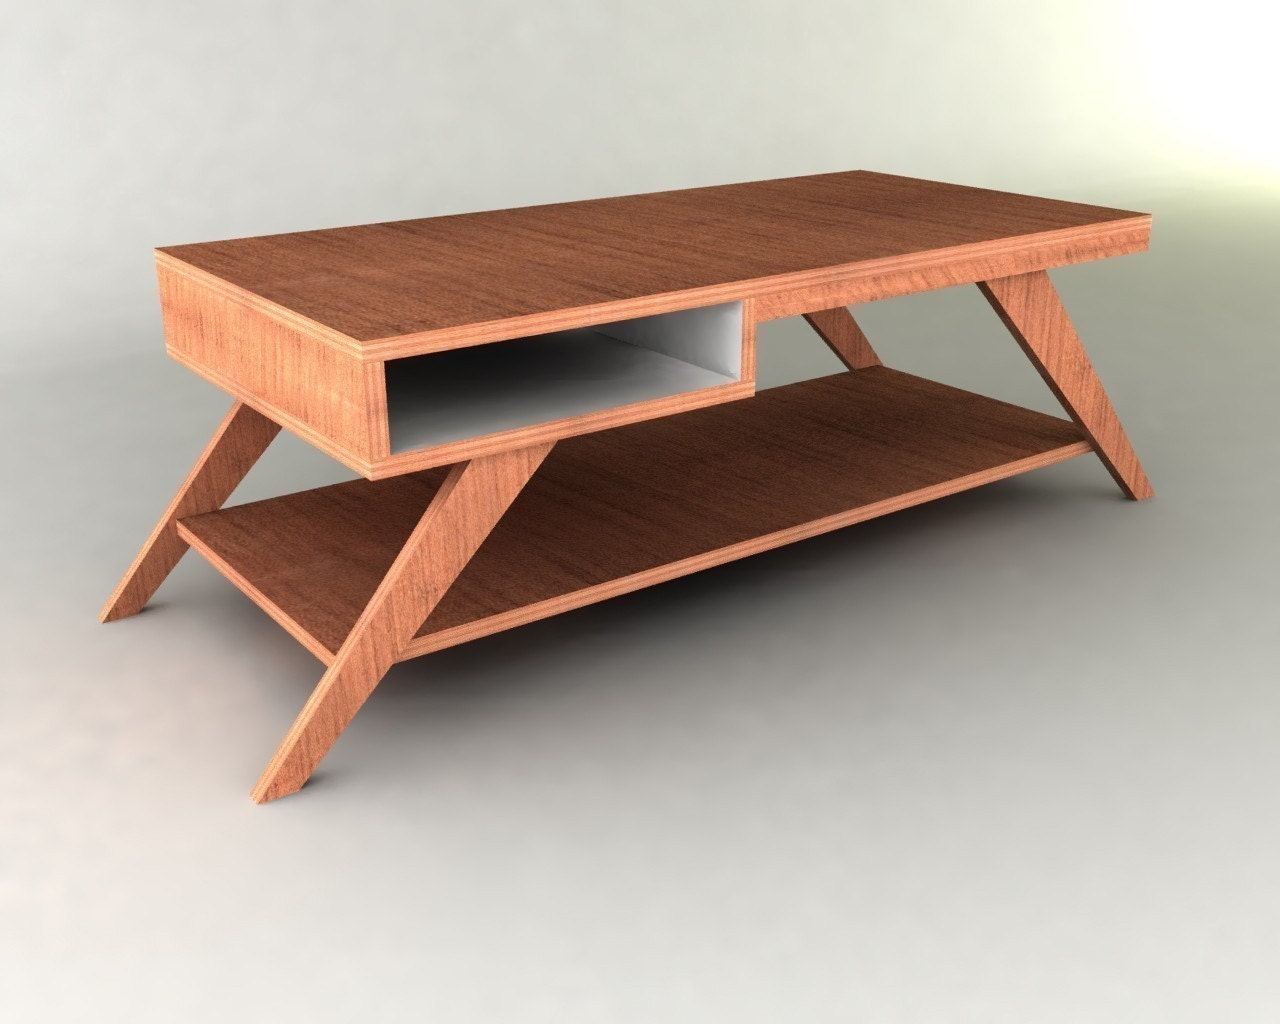 Retro modern eames style coffee table furniture plan for Wooden table design